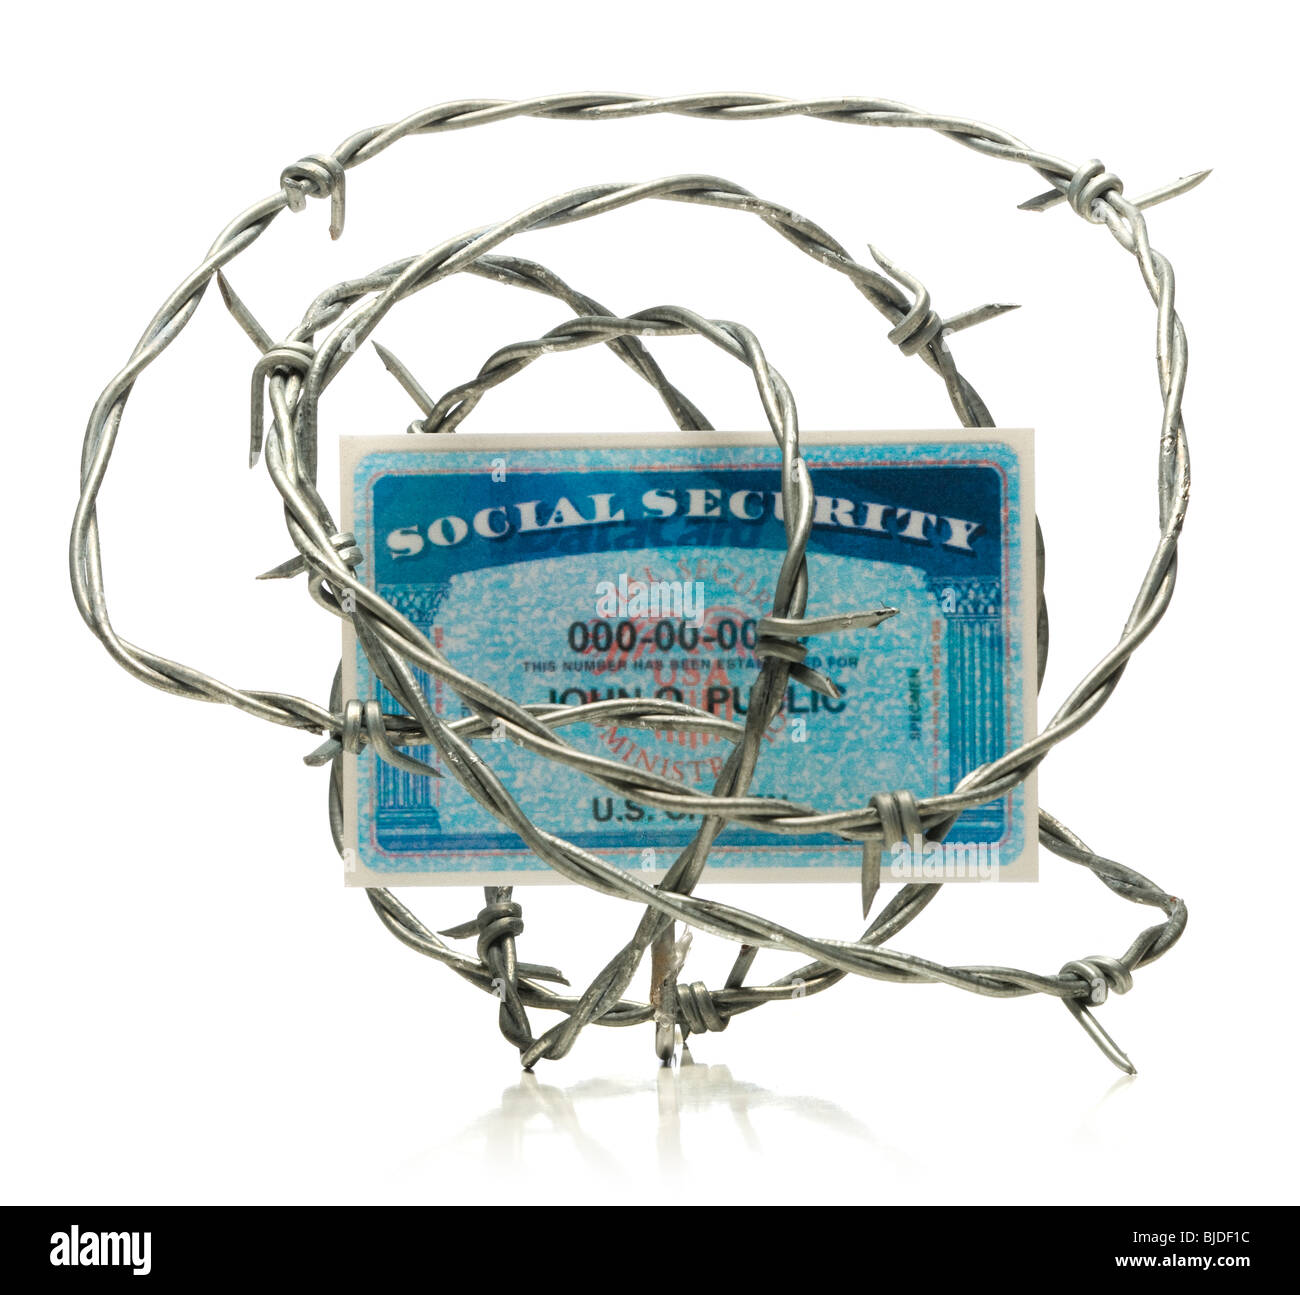 Social security card surrounded by barbed wire. - Stock Image